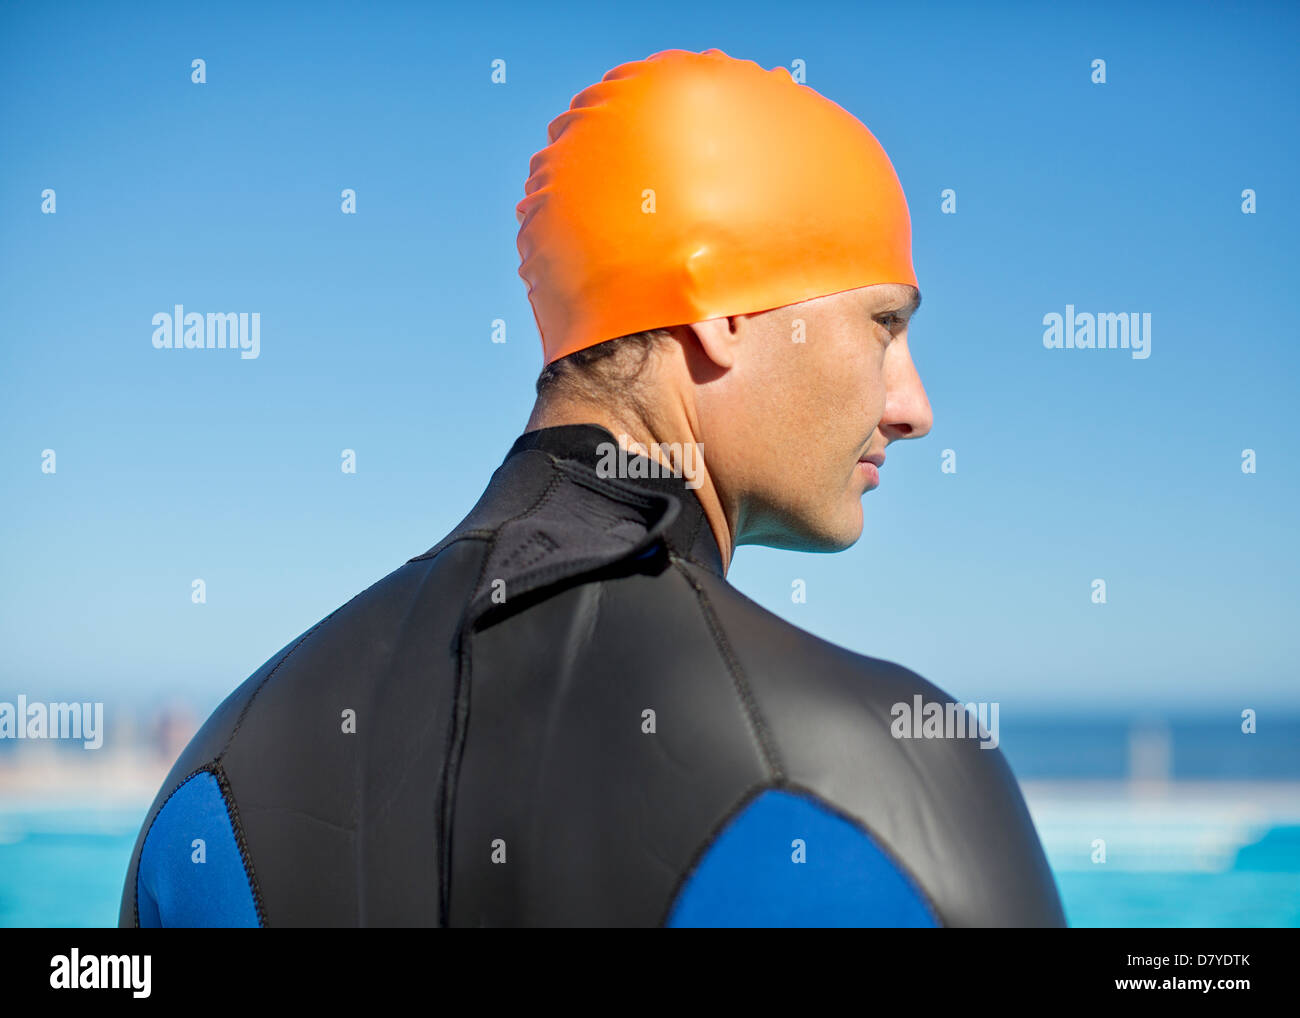 Triathlete wearing wetsuit and cap - Stock Image